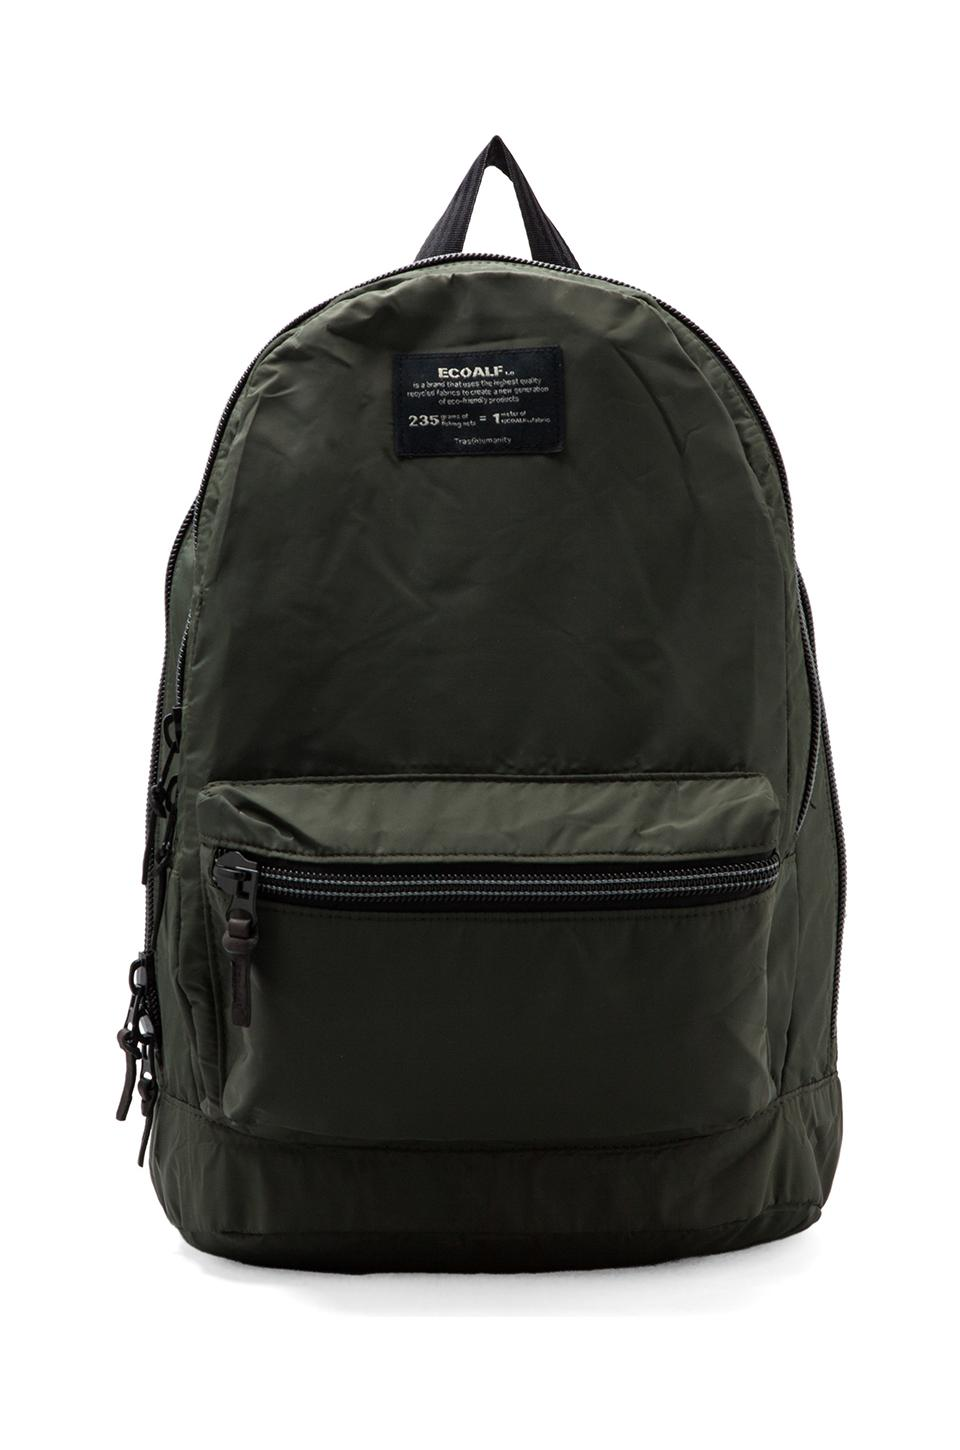 ECOALF Munich Backpack in Dark Khaki